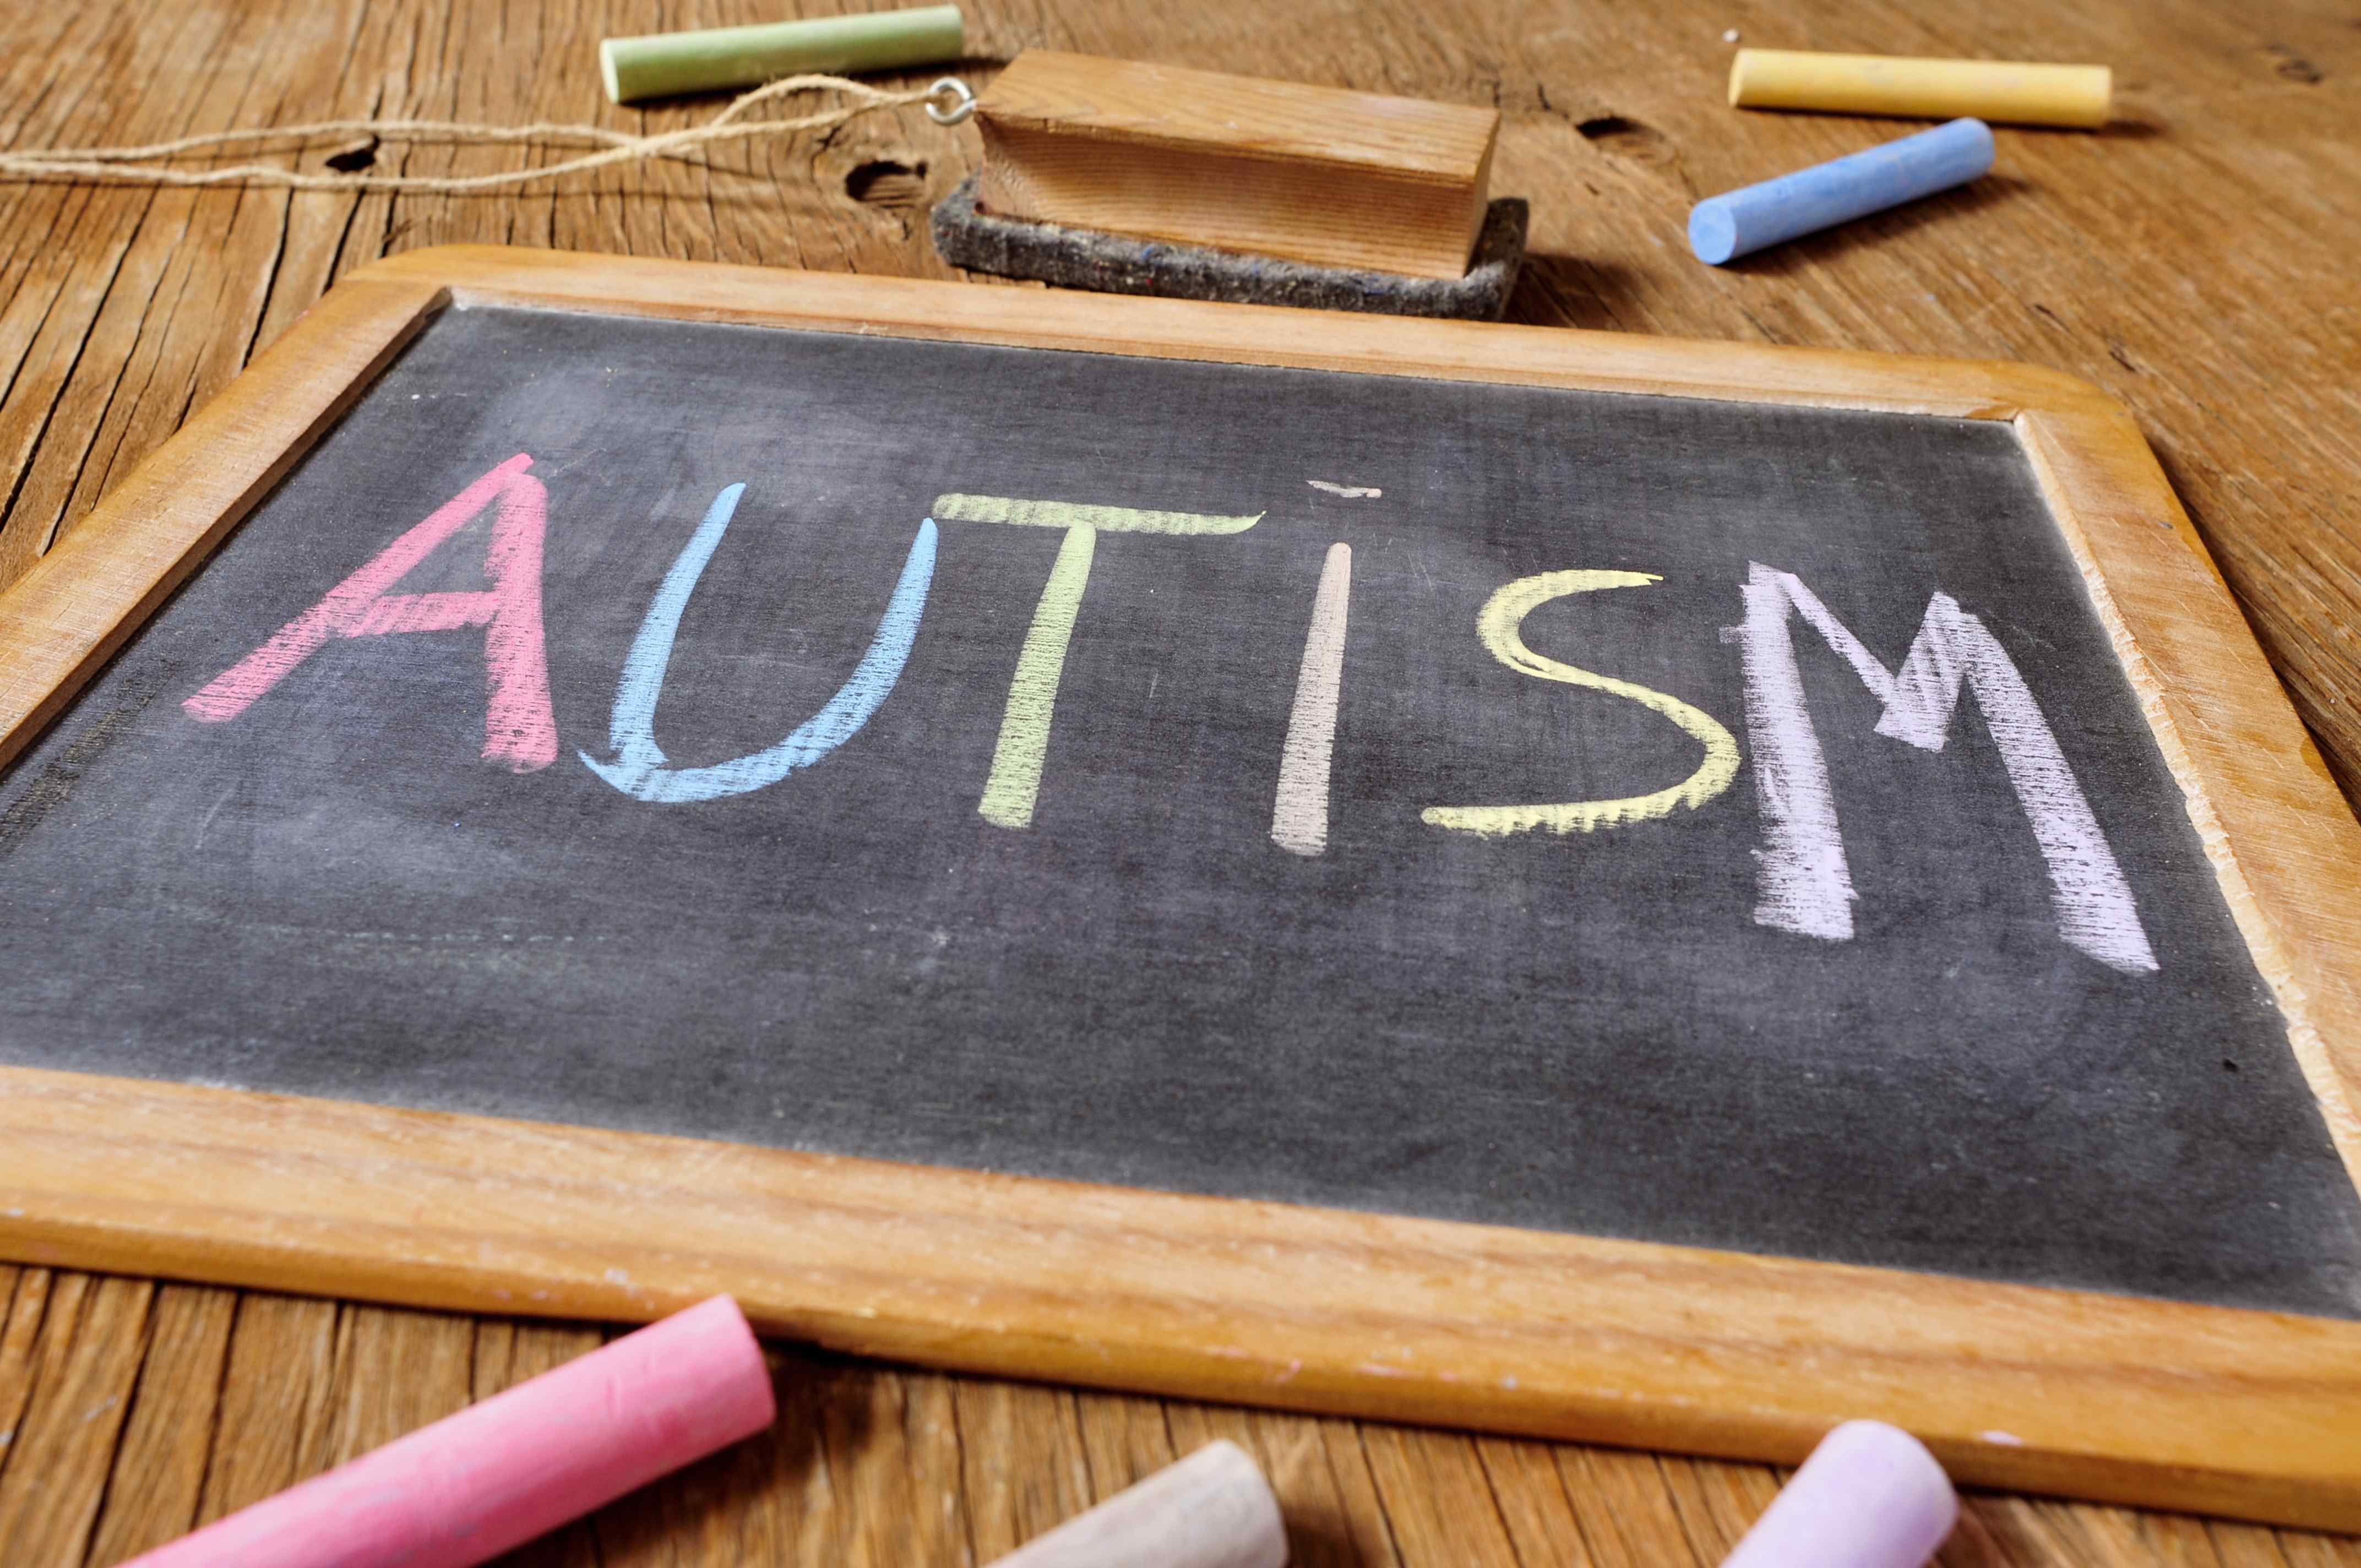 early identification of autism The national institute of mental health states symptoms of autism vary from one child to the next, but all demonstrate deficits in three areas.